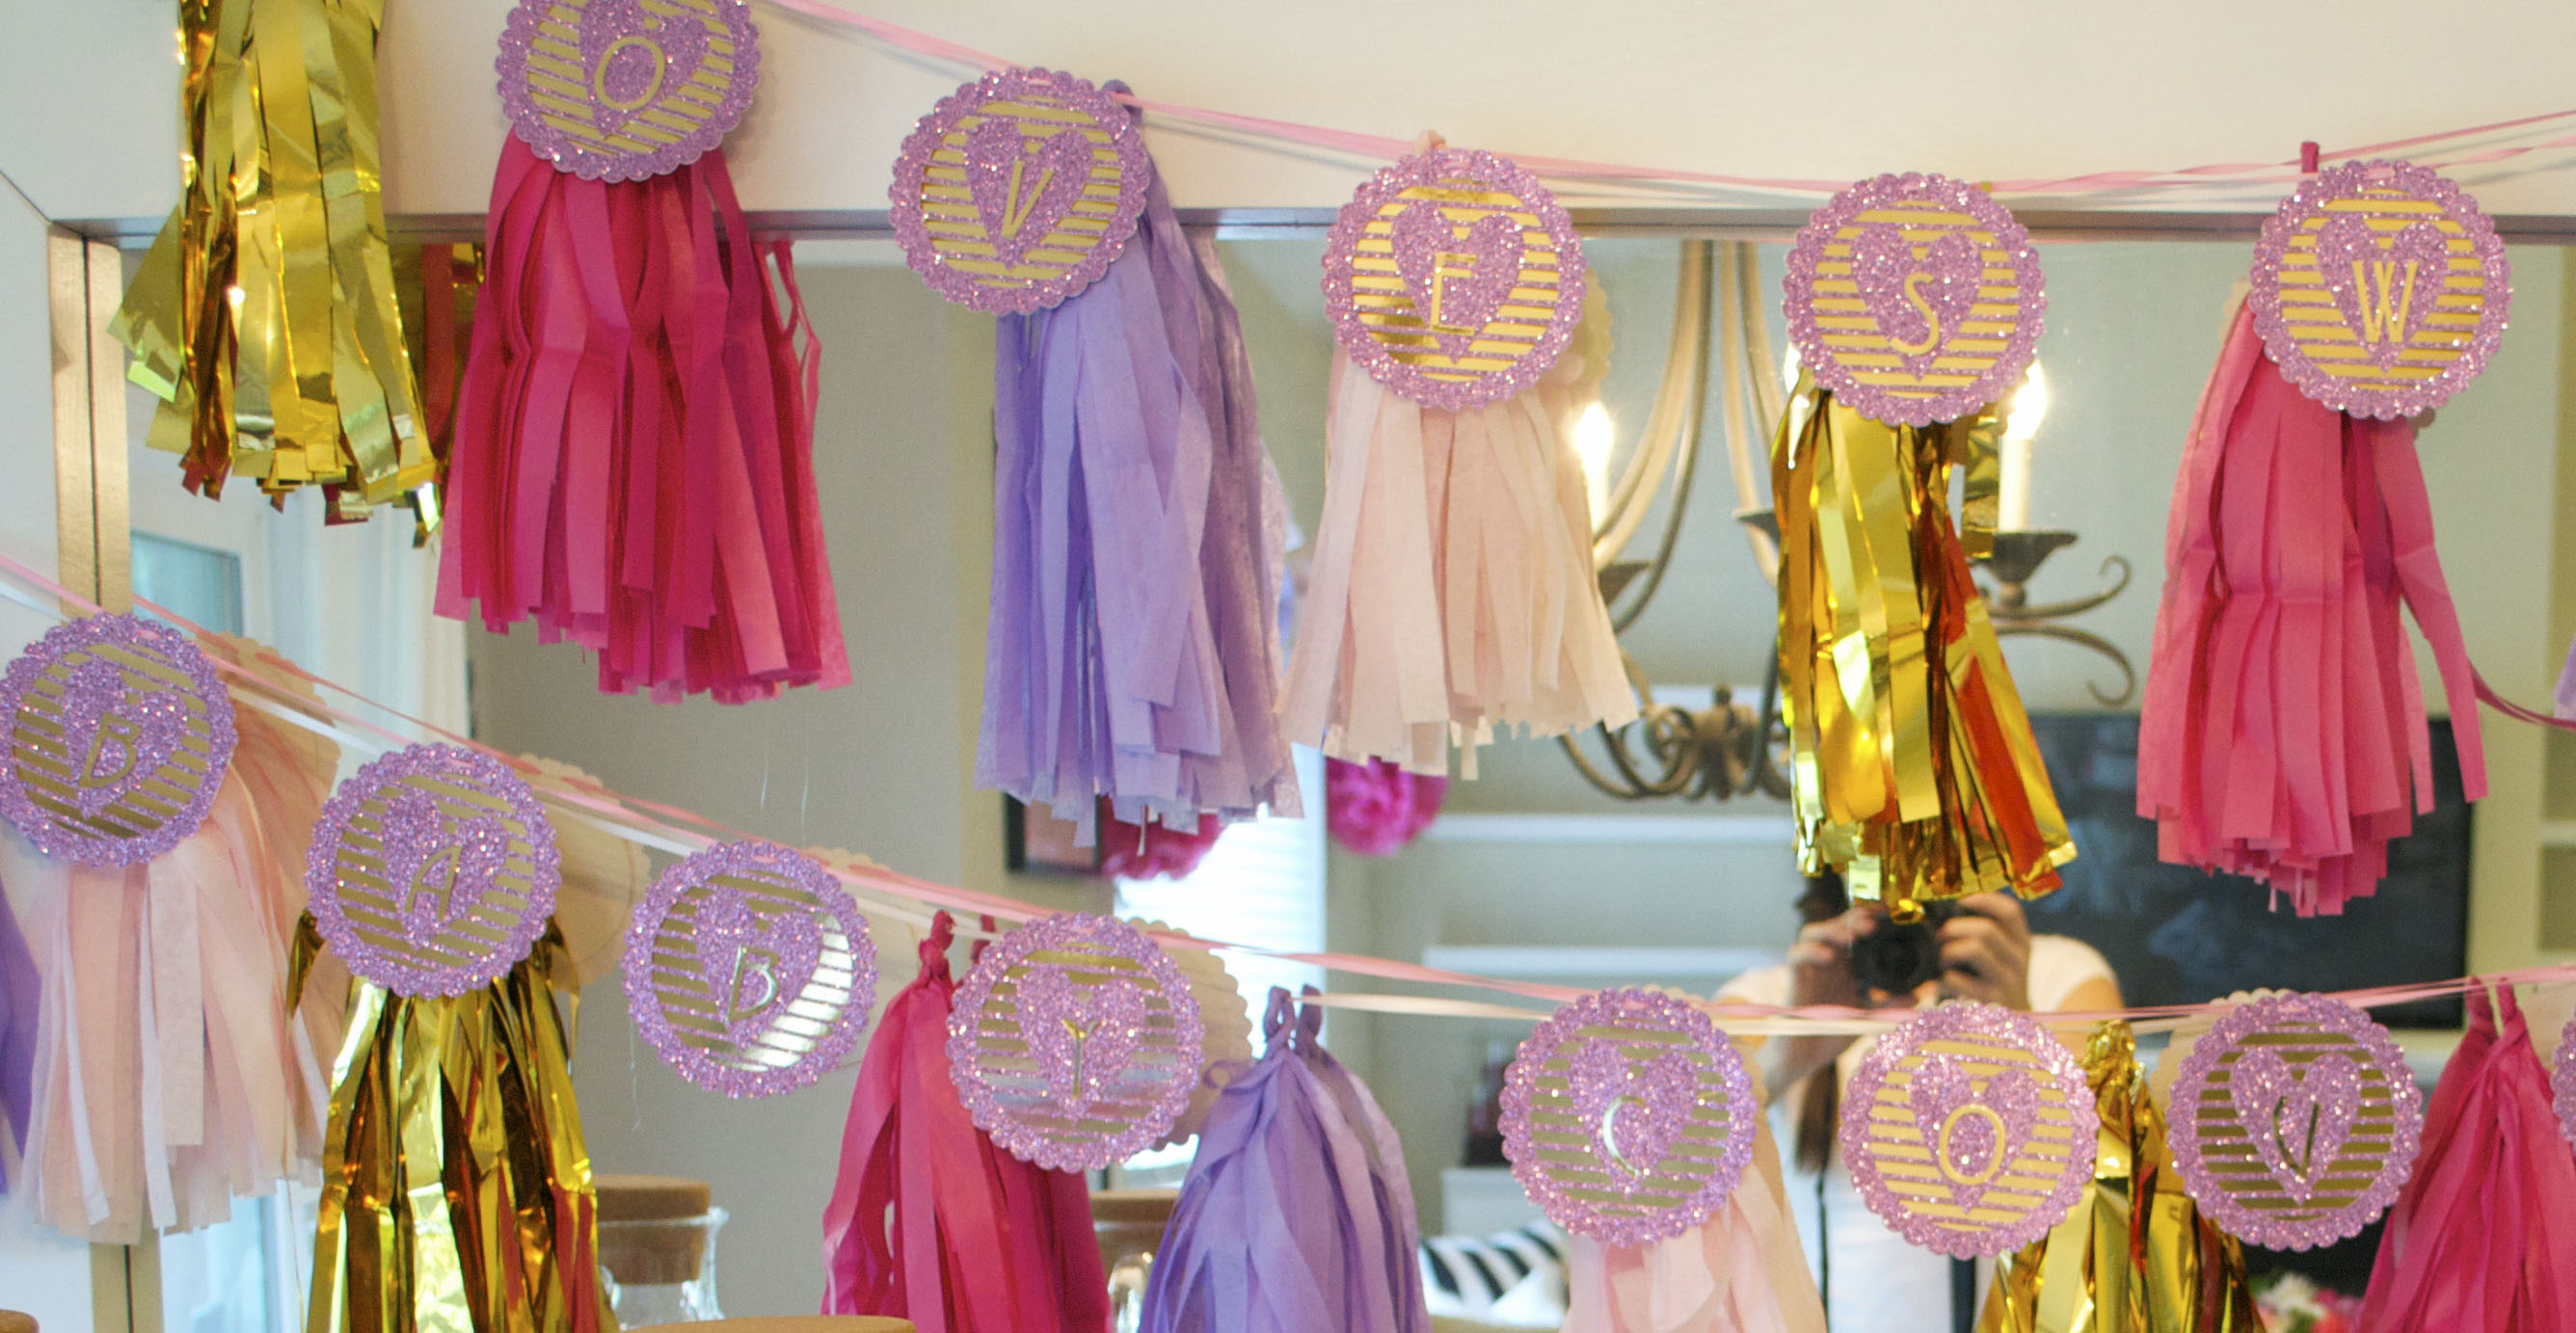 diy decor for the bride to be a personalized bachelorette party